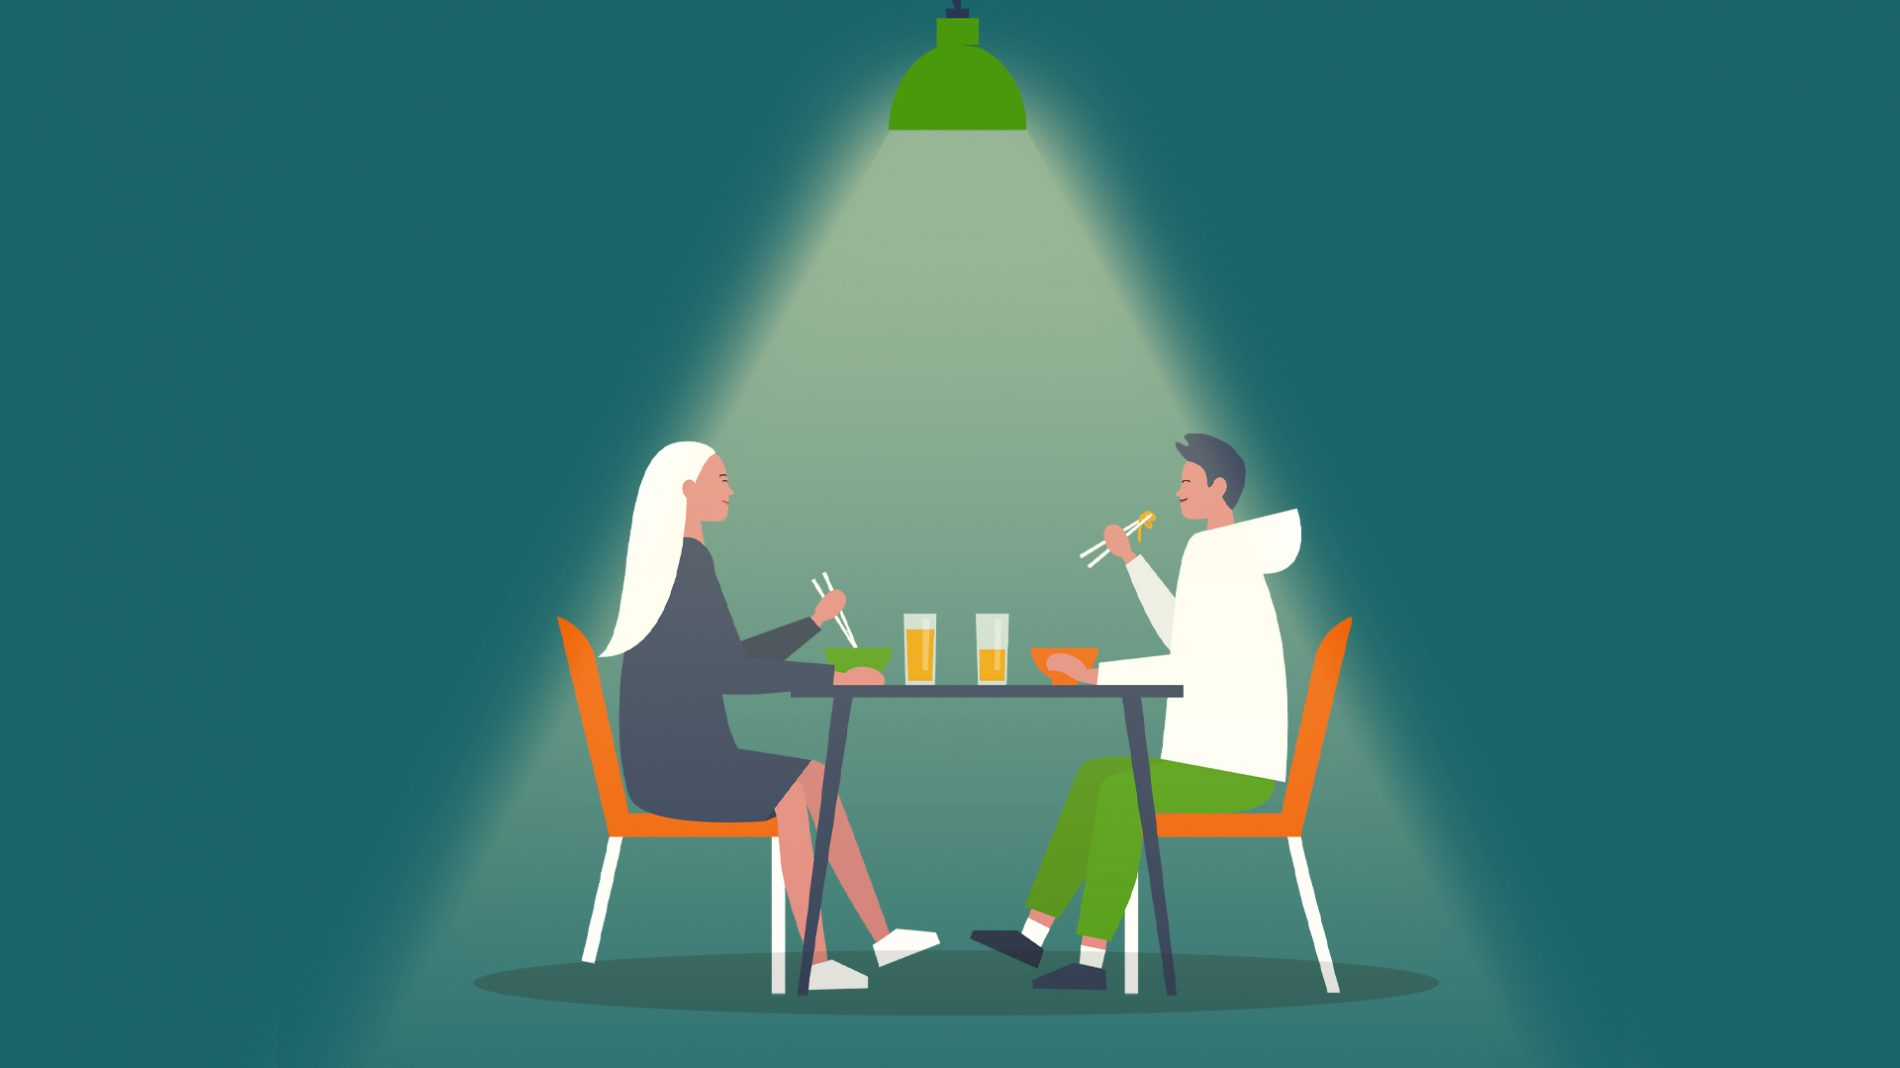 Illustration of two people sitting at a table having food and drinks together